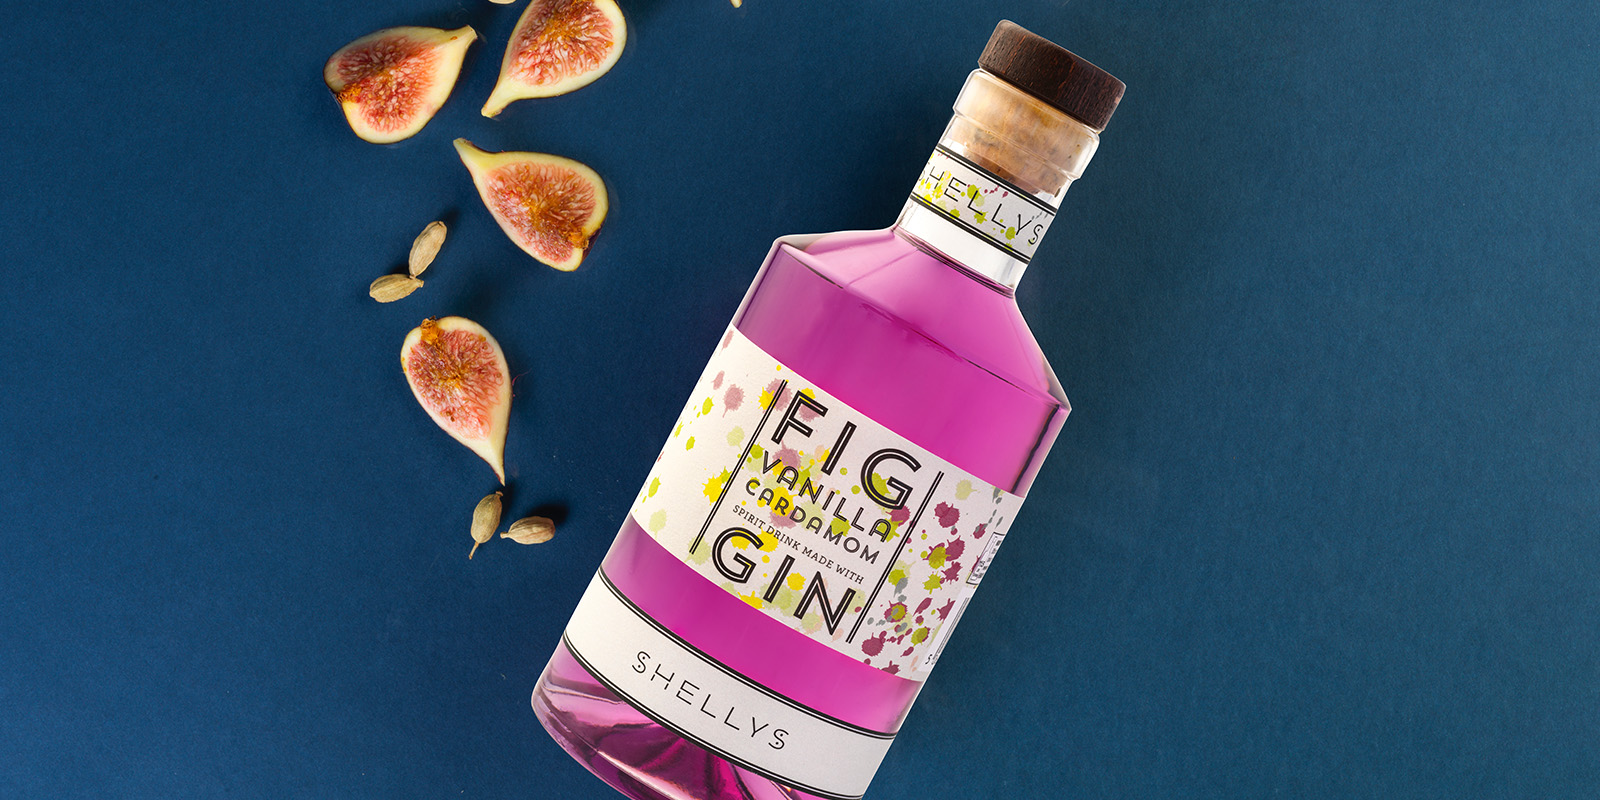 Shelly Drinks fig and vinilla Gin